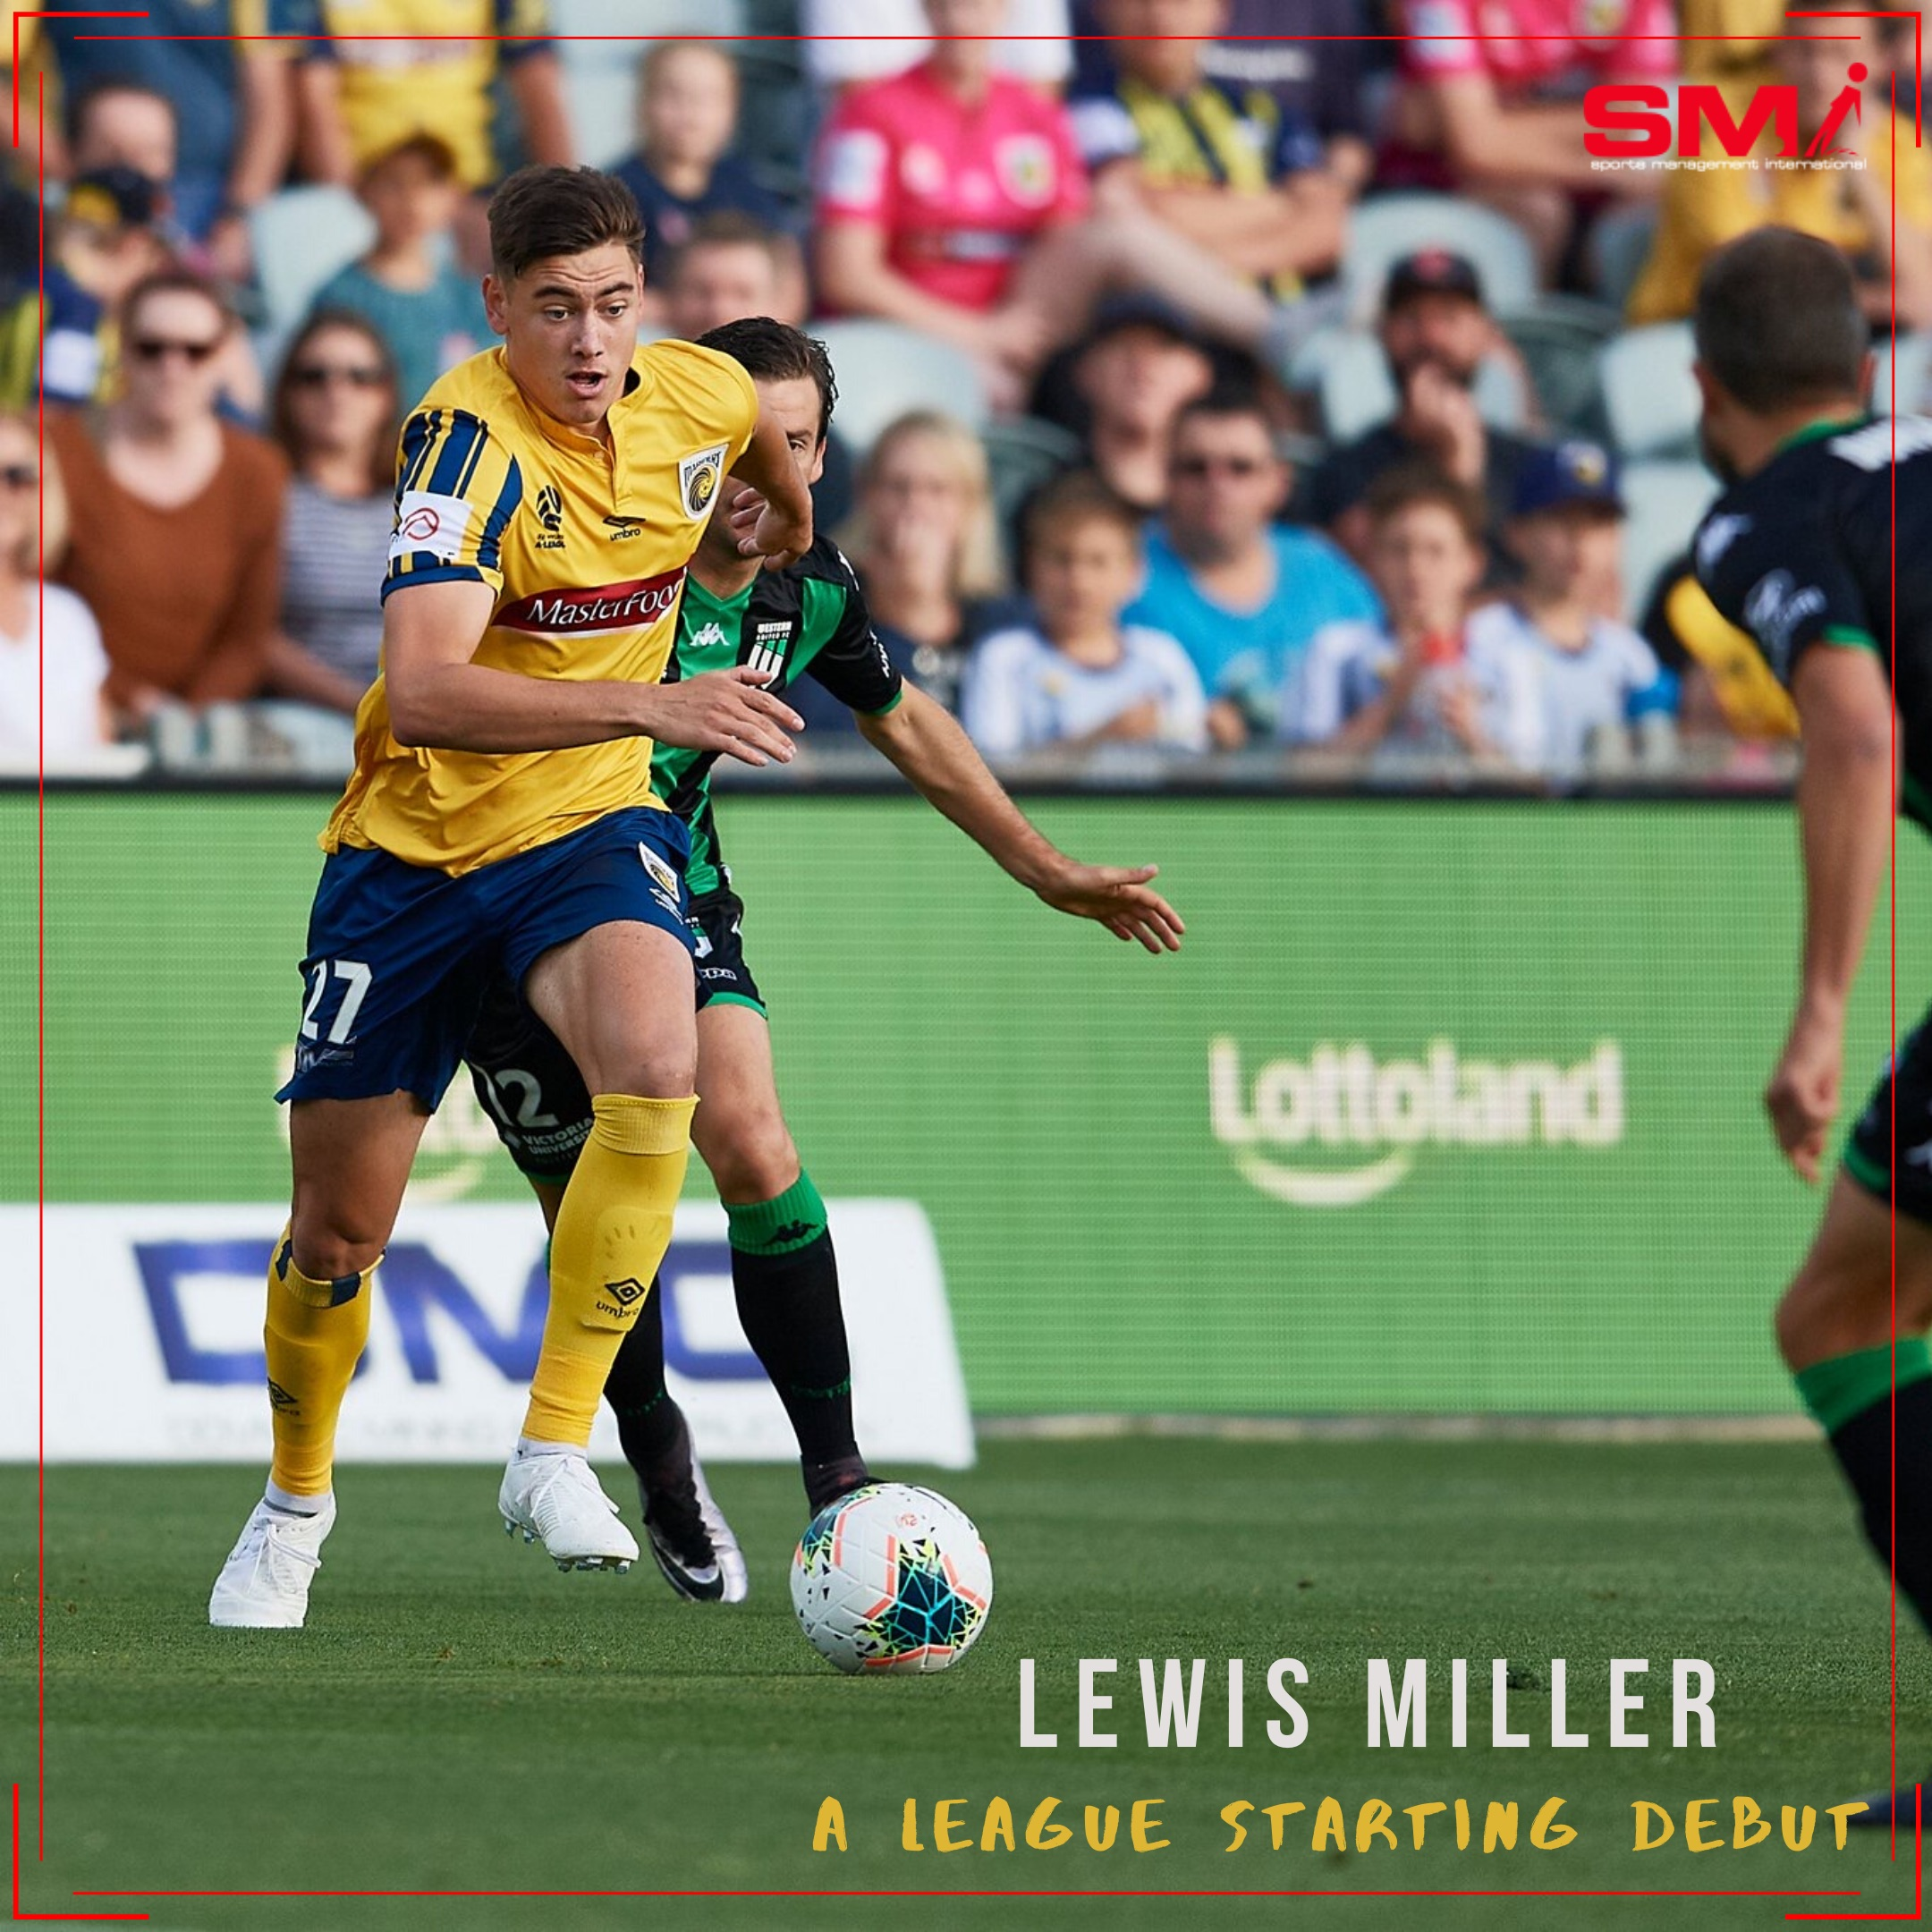 Lewis Miller starting Debut for Central Coast Mariners